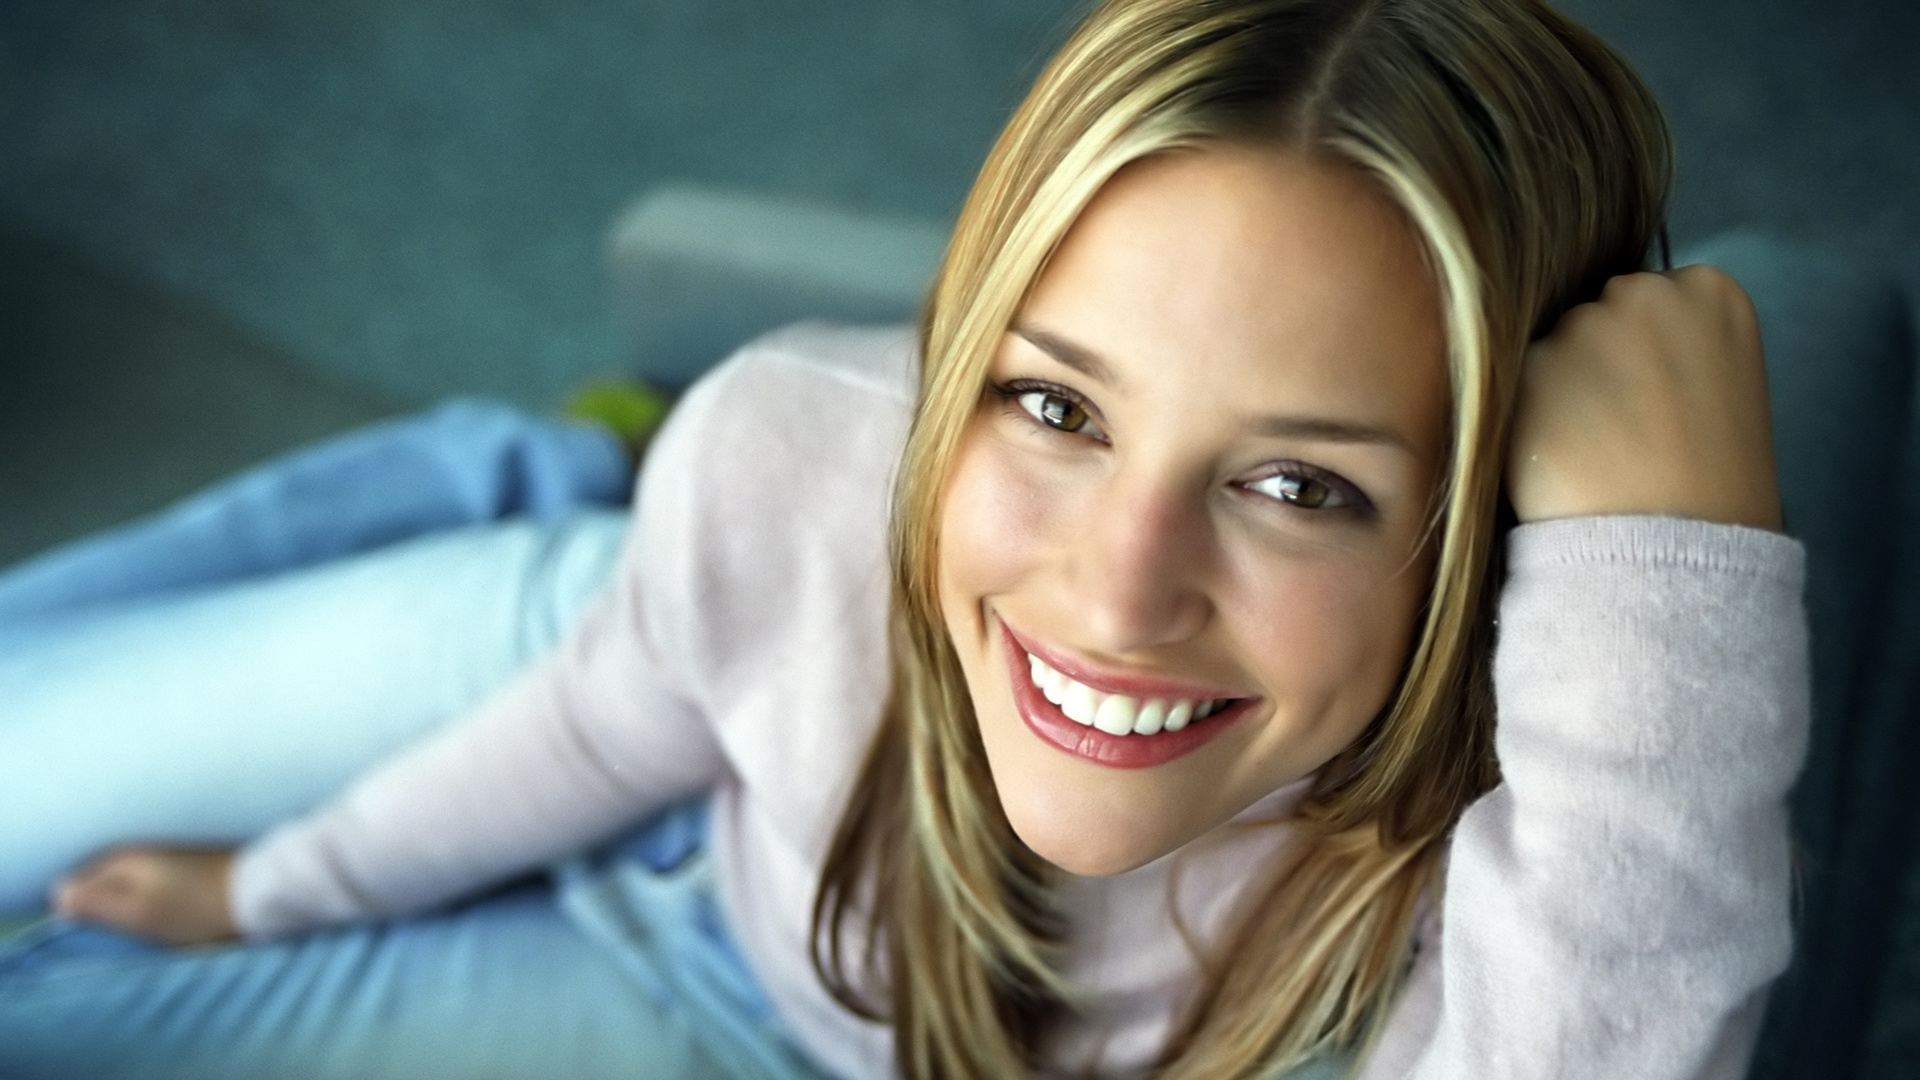 Images Of Cute Background Wallpapers 6 Hd Piper Perabo Wallpapers Hdwallsource Com